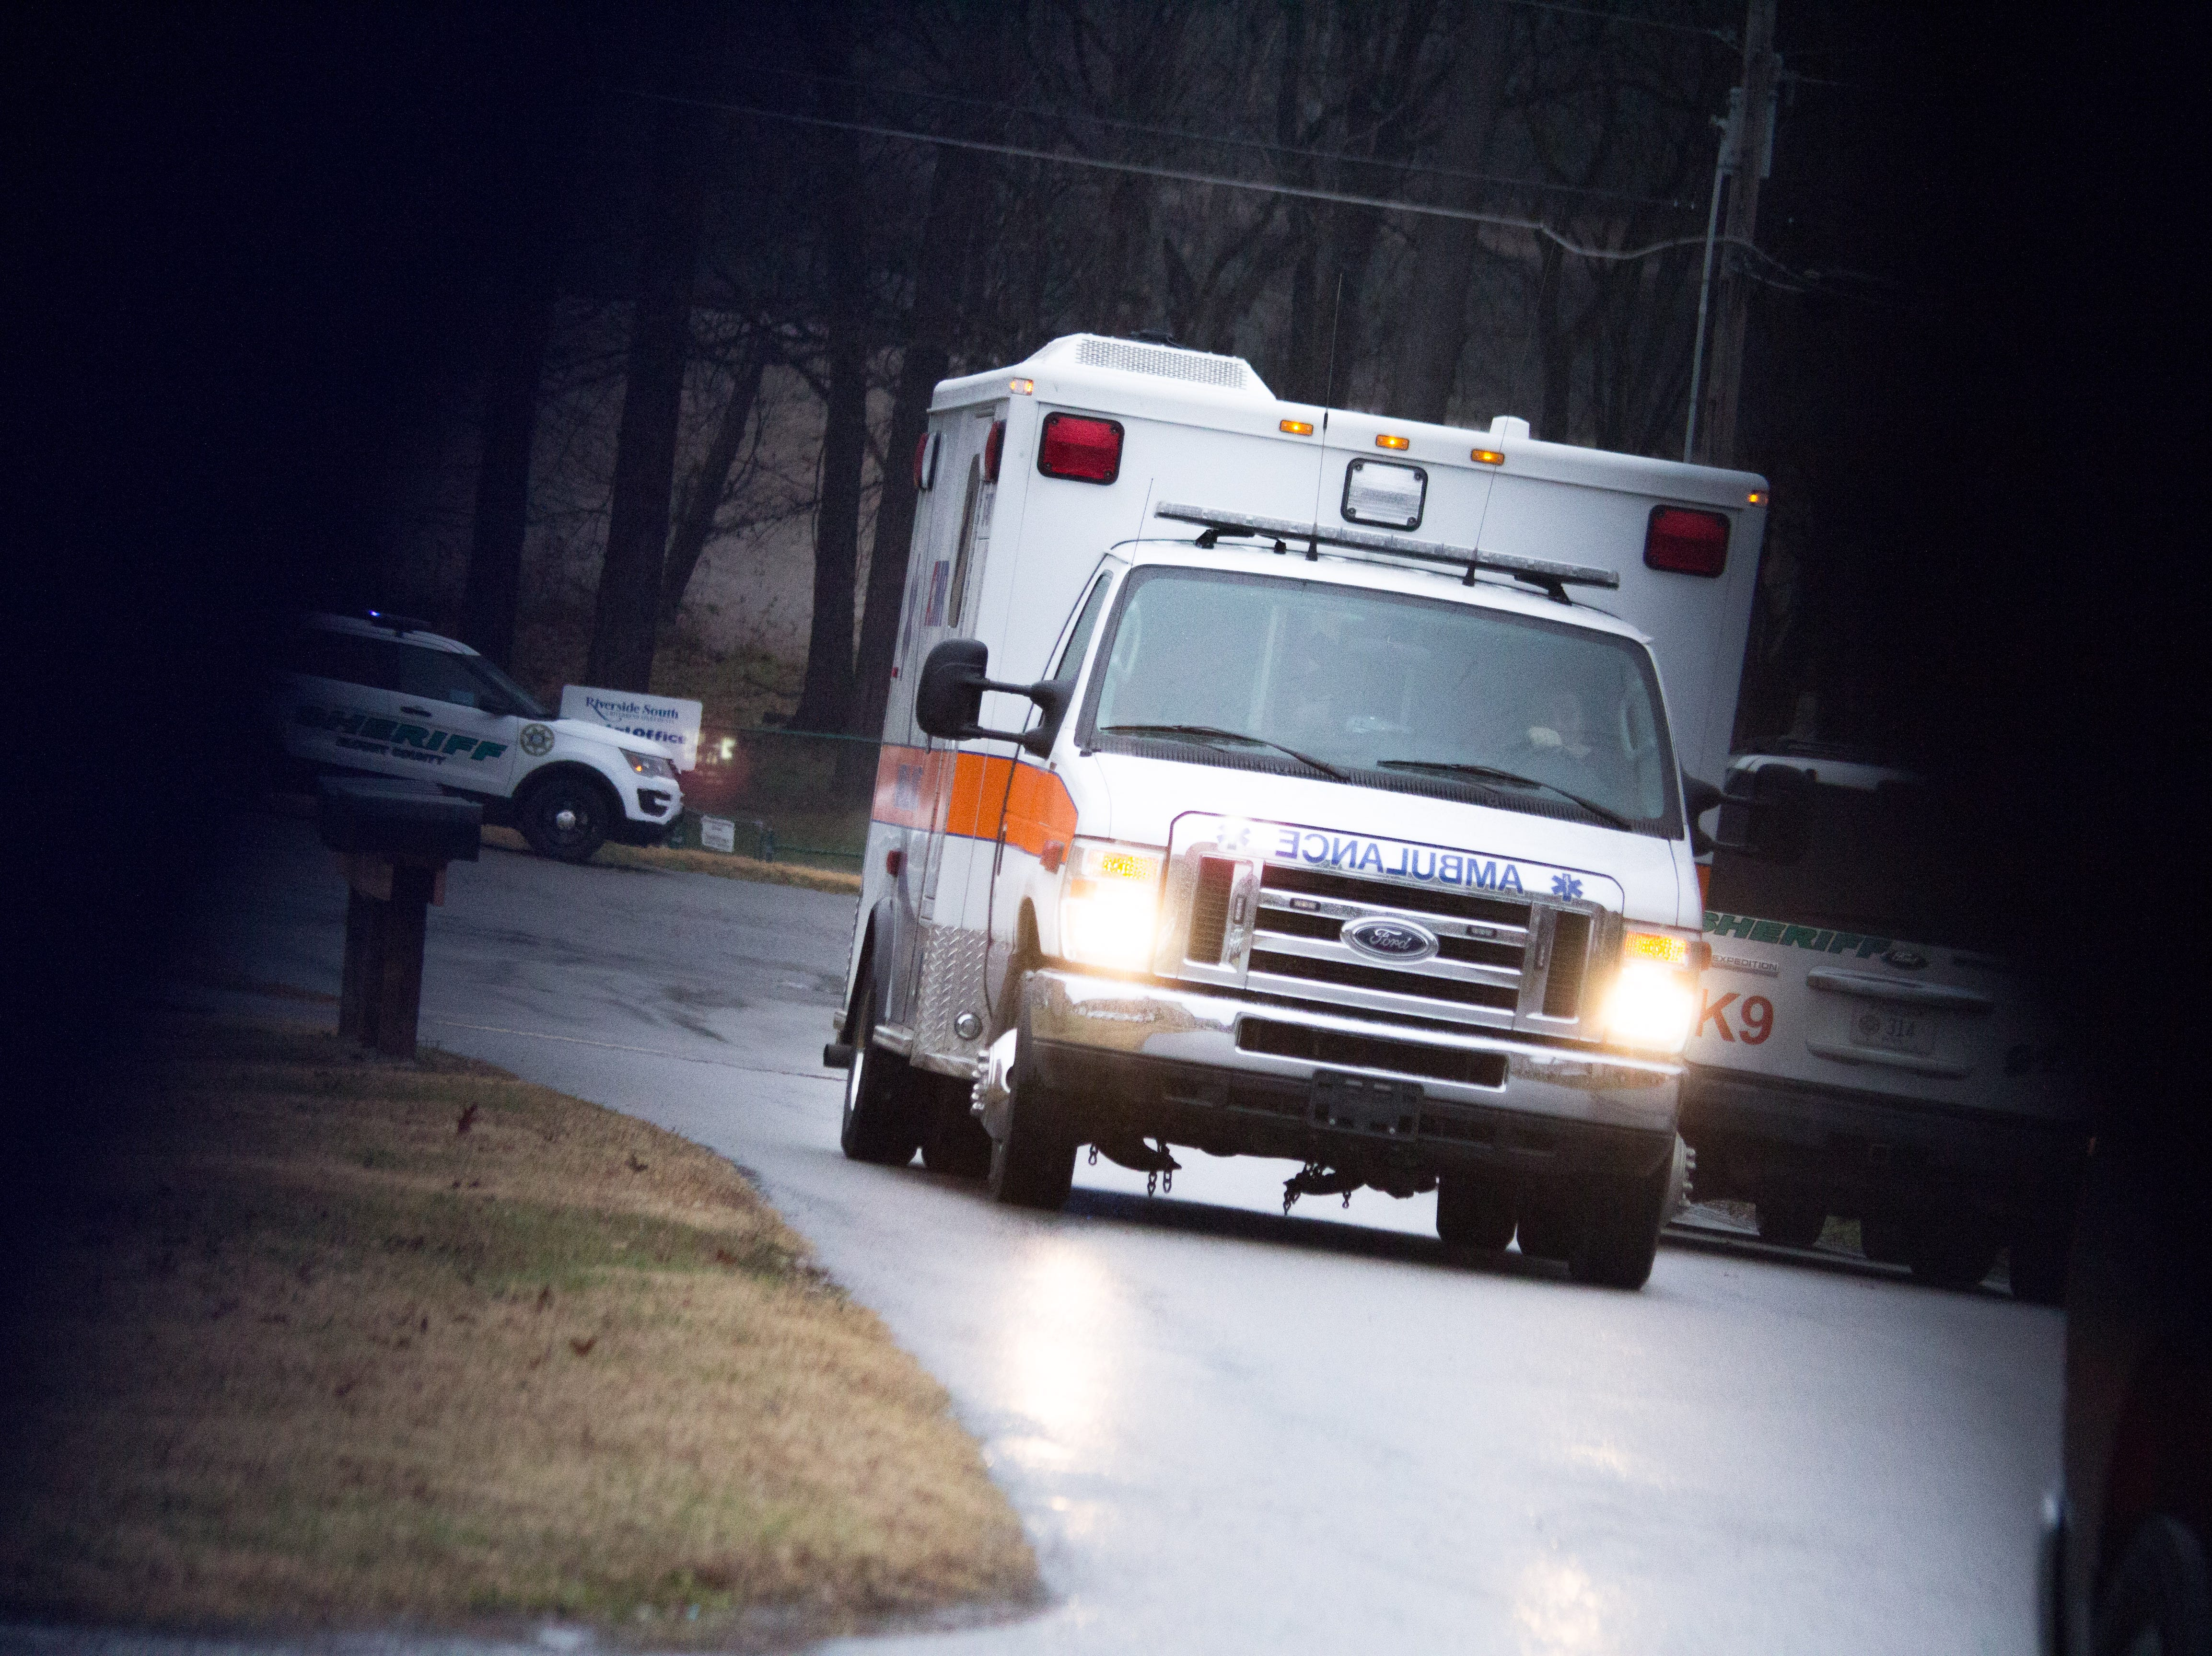 An ambulance leaves the scene of a fatal standoff in Blount County on Dec. 8, 2018. The man who was killed threatened to attempt suicide by cop earlier in the week.